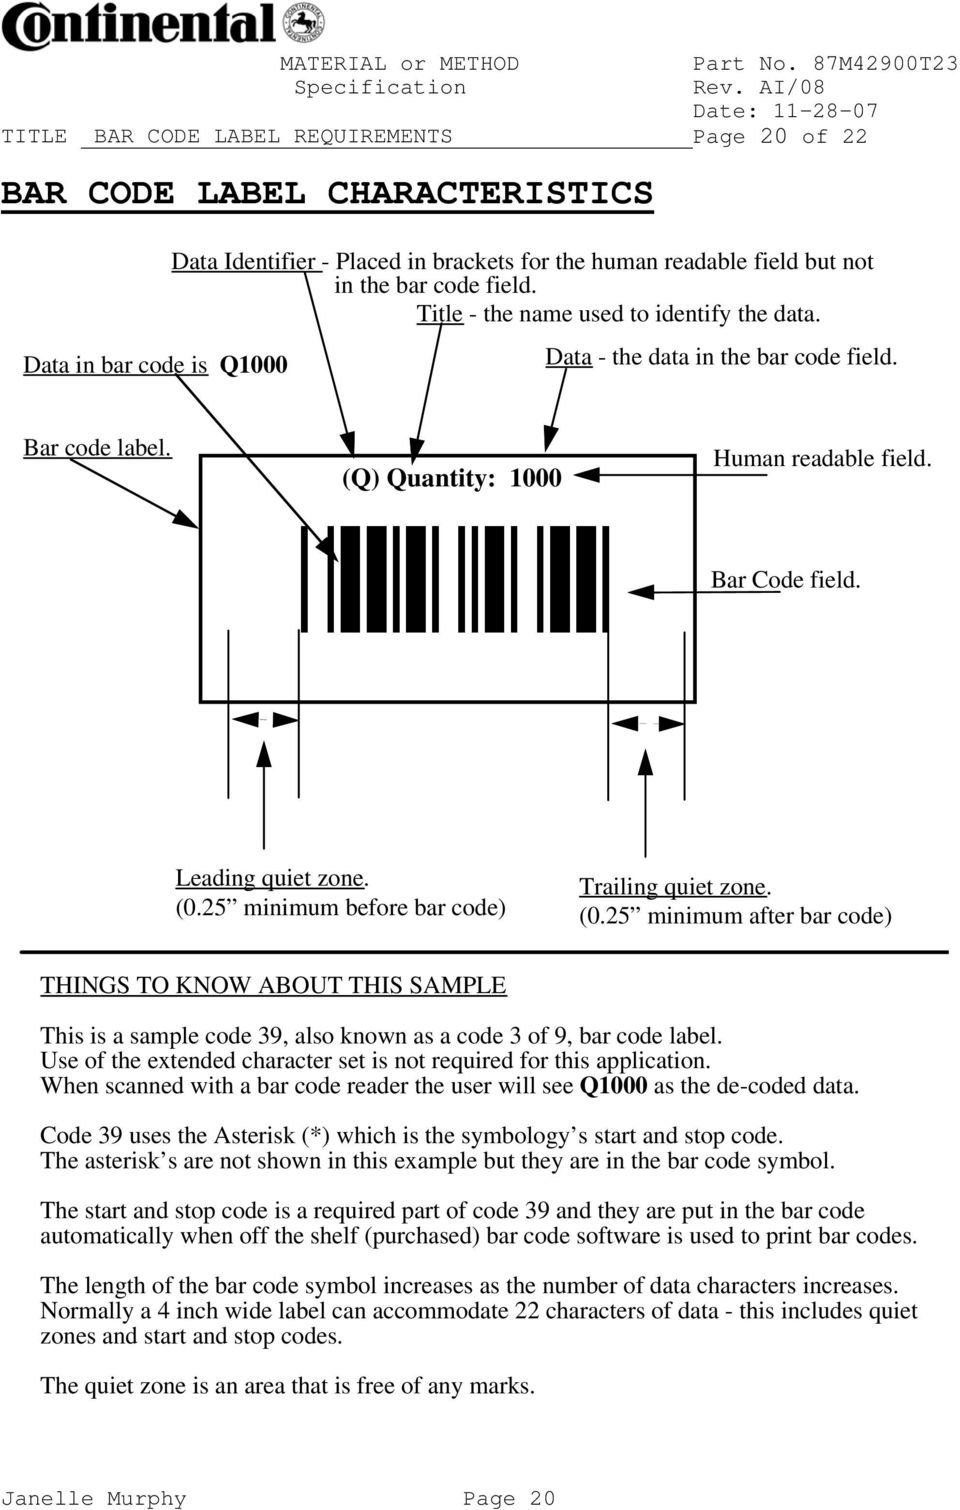 25 minimum before bar code) Trailing quiet zone. (0.25 minimum after bar code) THINGS TO KNOW ABOUT THIS SAMPLE This is a sample code 39, also known as a code 3 of 9, bar code label.